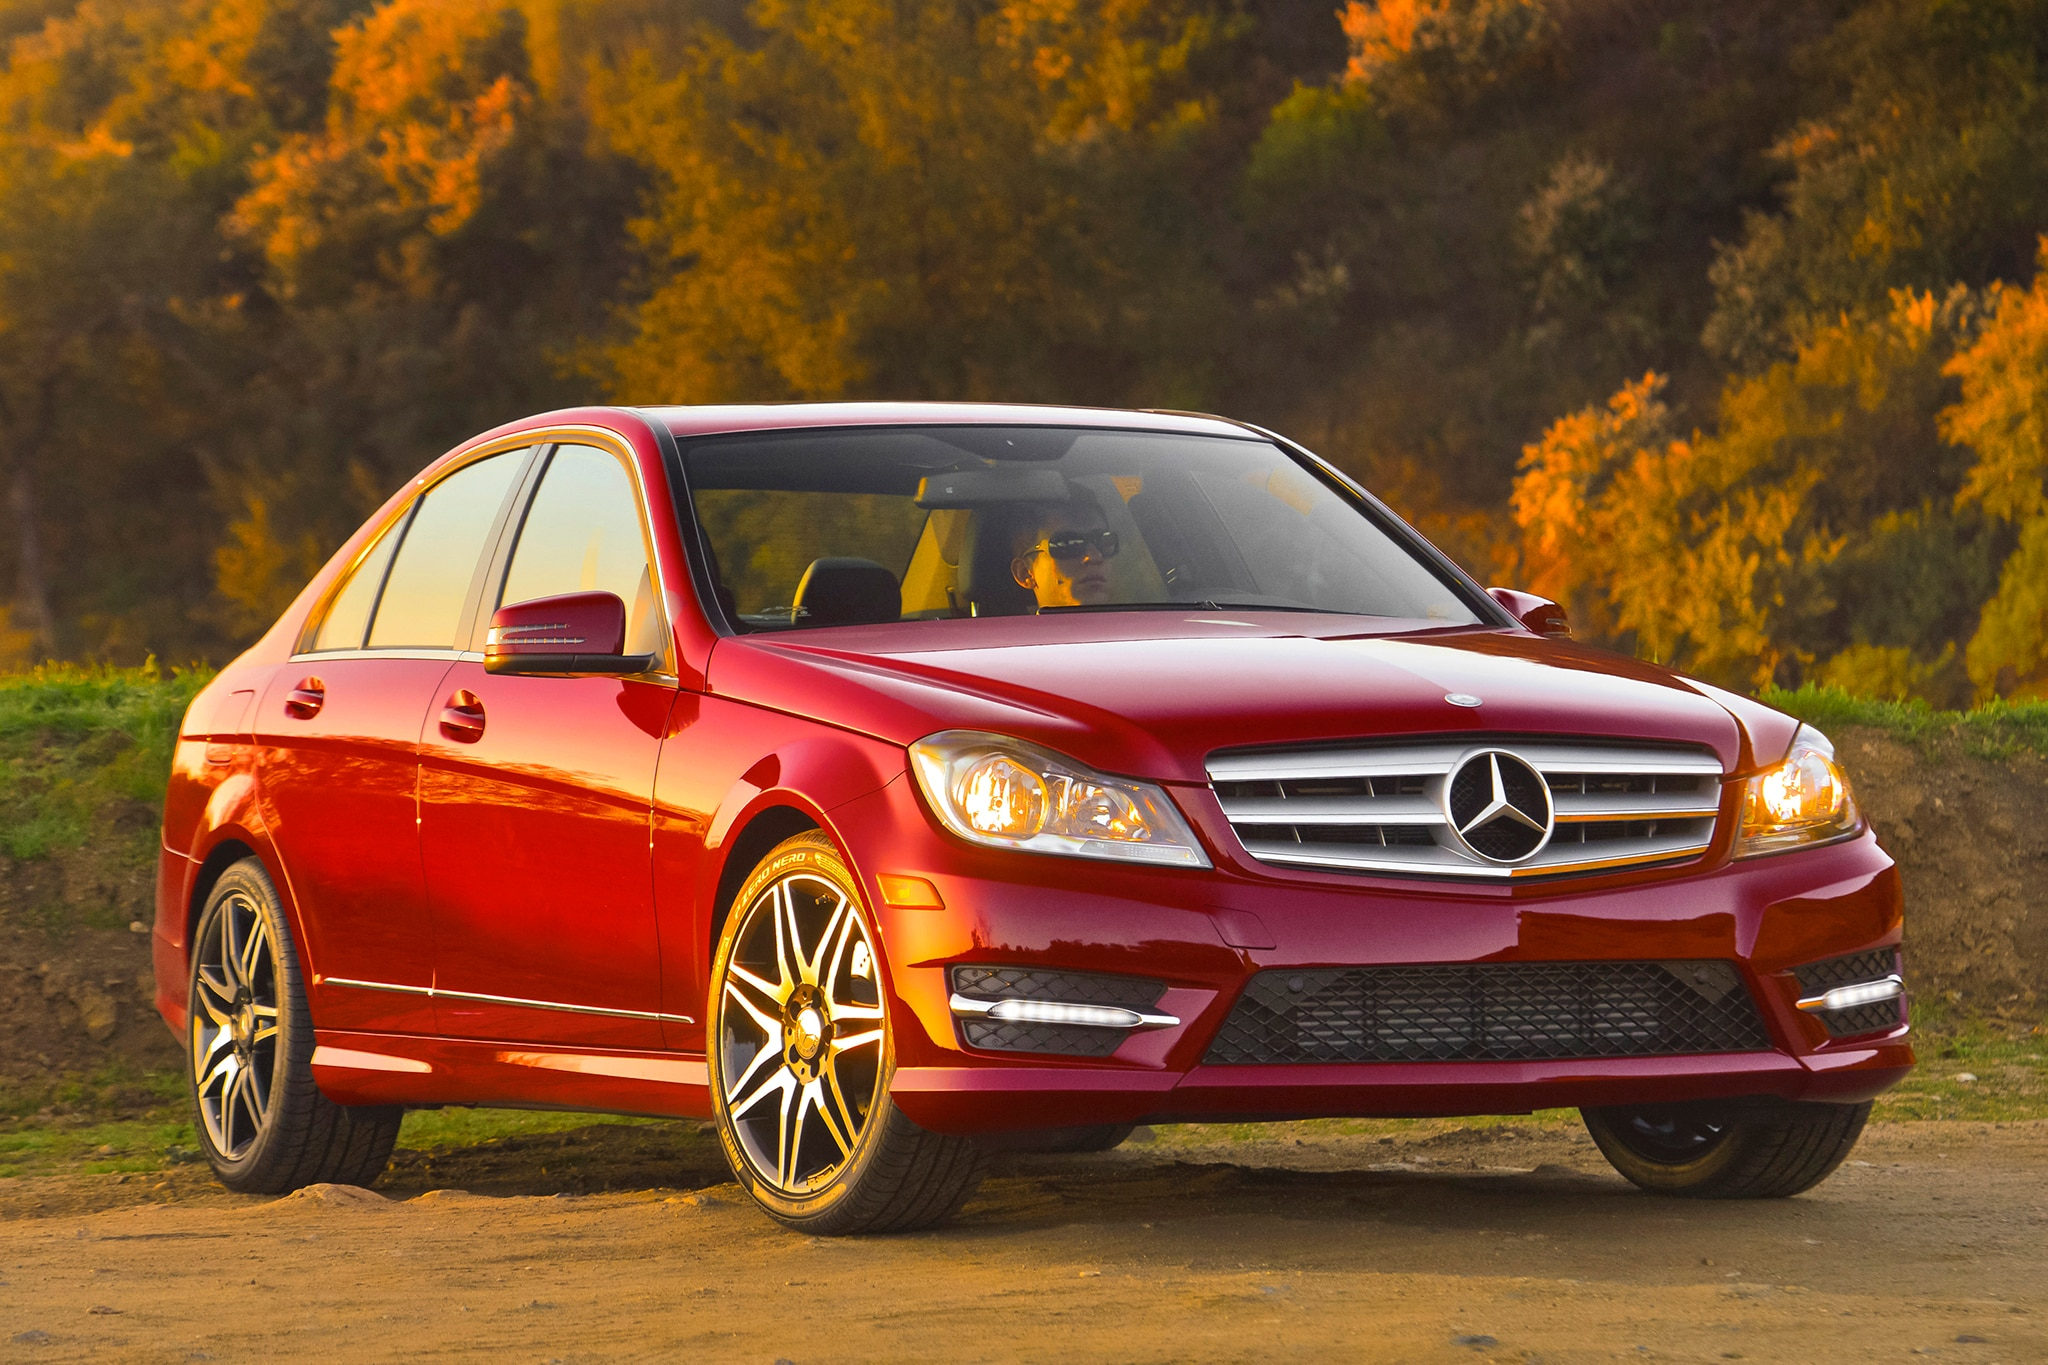 2013 14 mercedes benz c300 4matic fuel economy revised by epa for Mercedes benz c300 4matic 2015